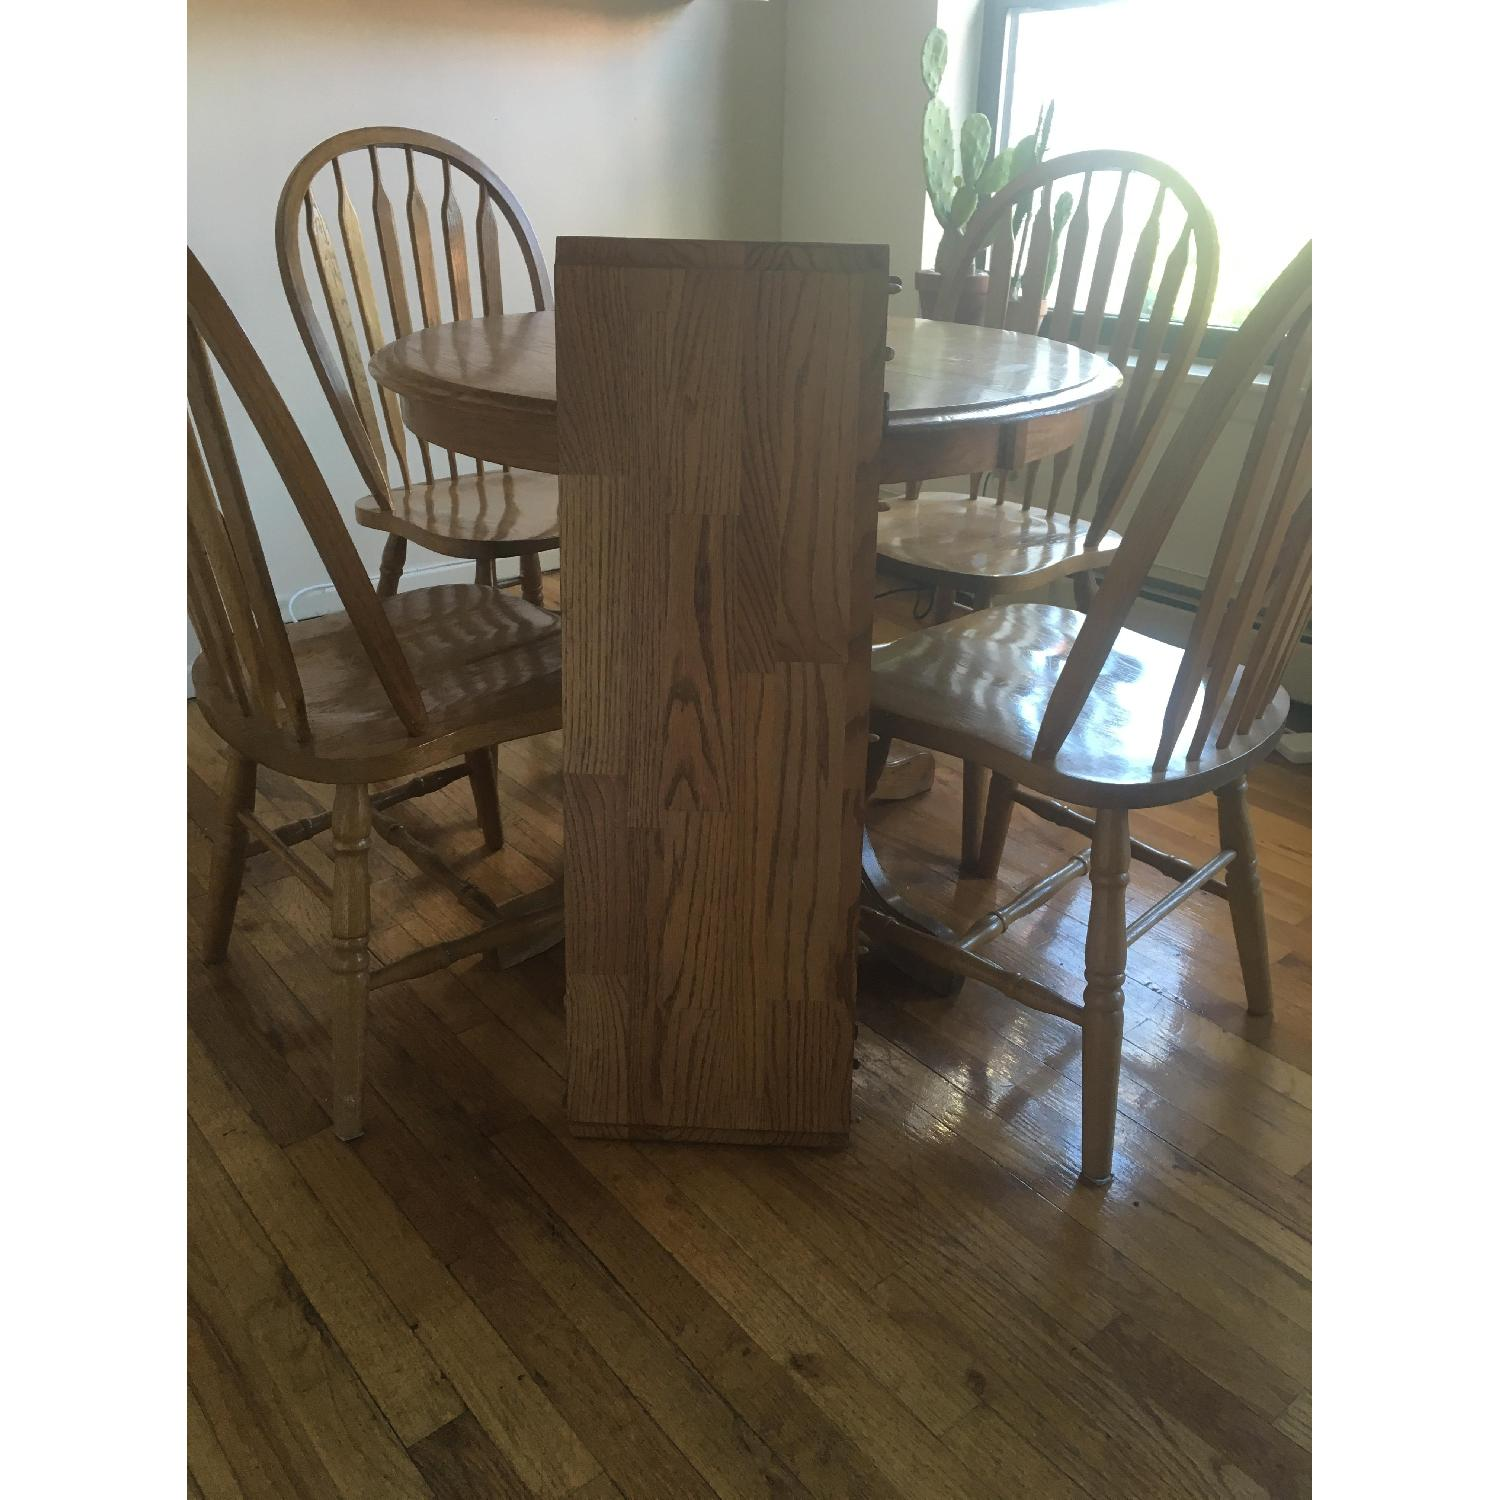 Oak Expandable Dining Table w/ 4 Chairs - image-2